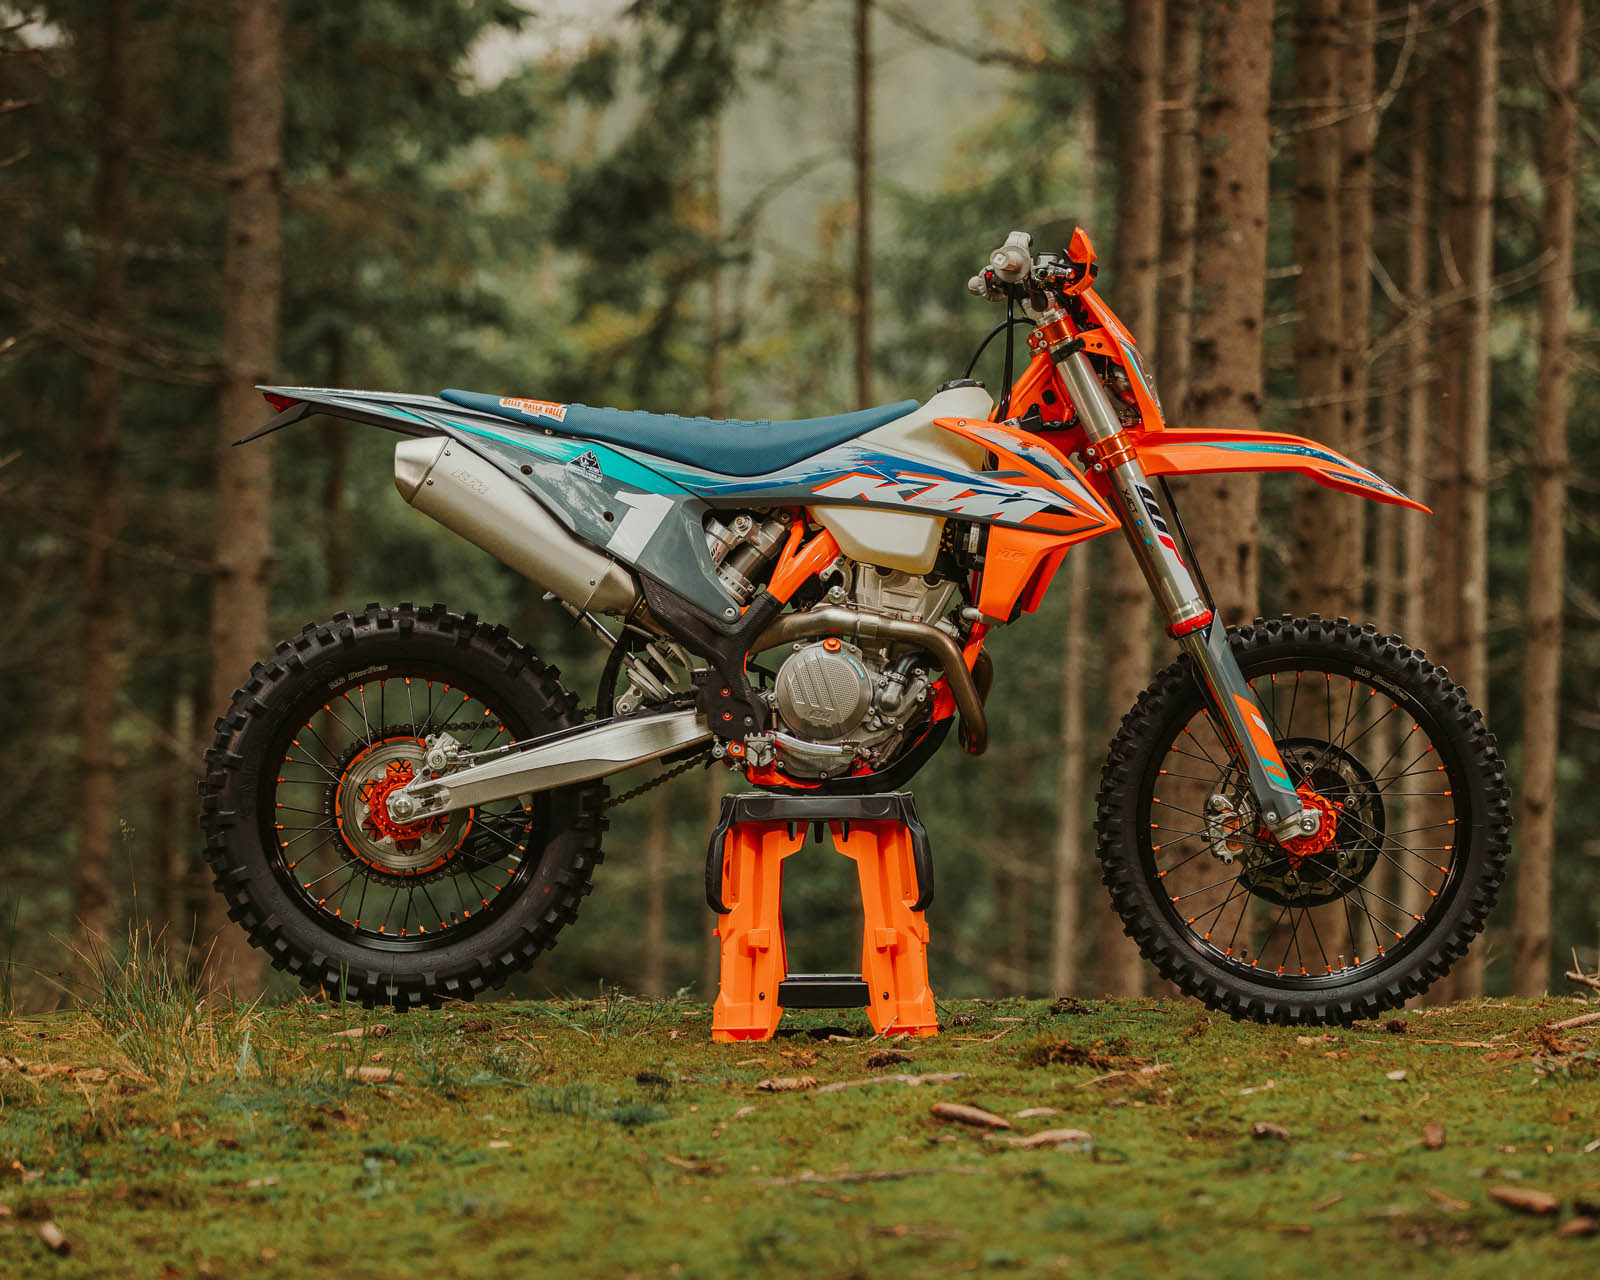 Wess Edition Ktm Enduro Bike Announced Iridewess Ktm ag is an austrian motorcycle and sports car manufacturer owned by ktm industries ag and indian manufacturer bajaj auto. wess edition ktm enduro bike announced